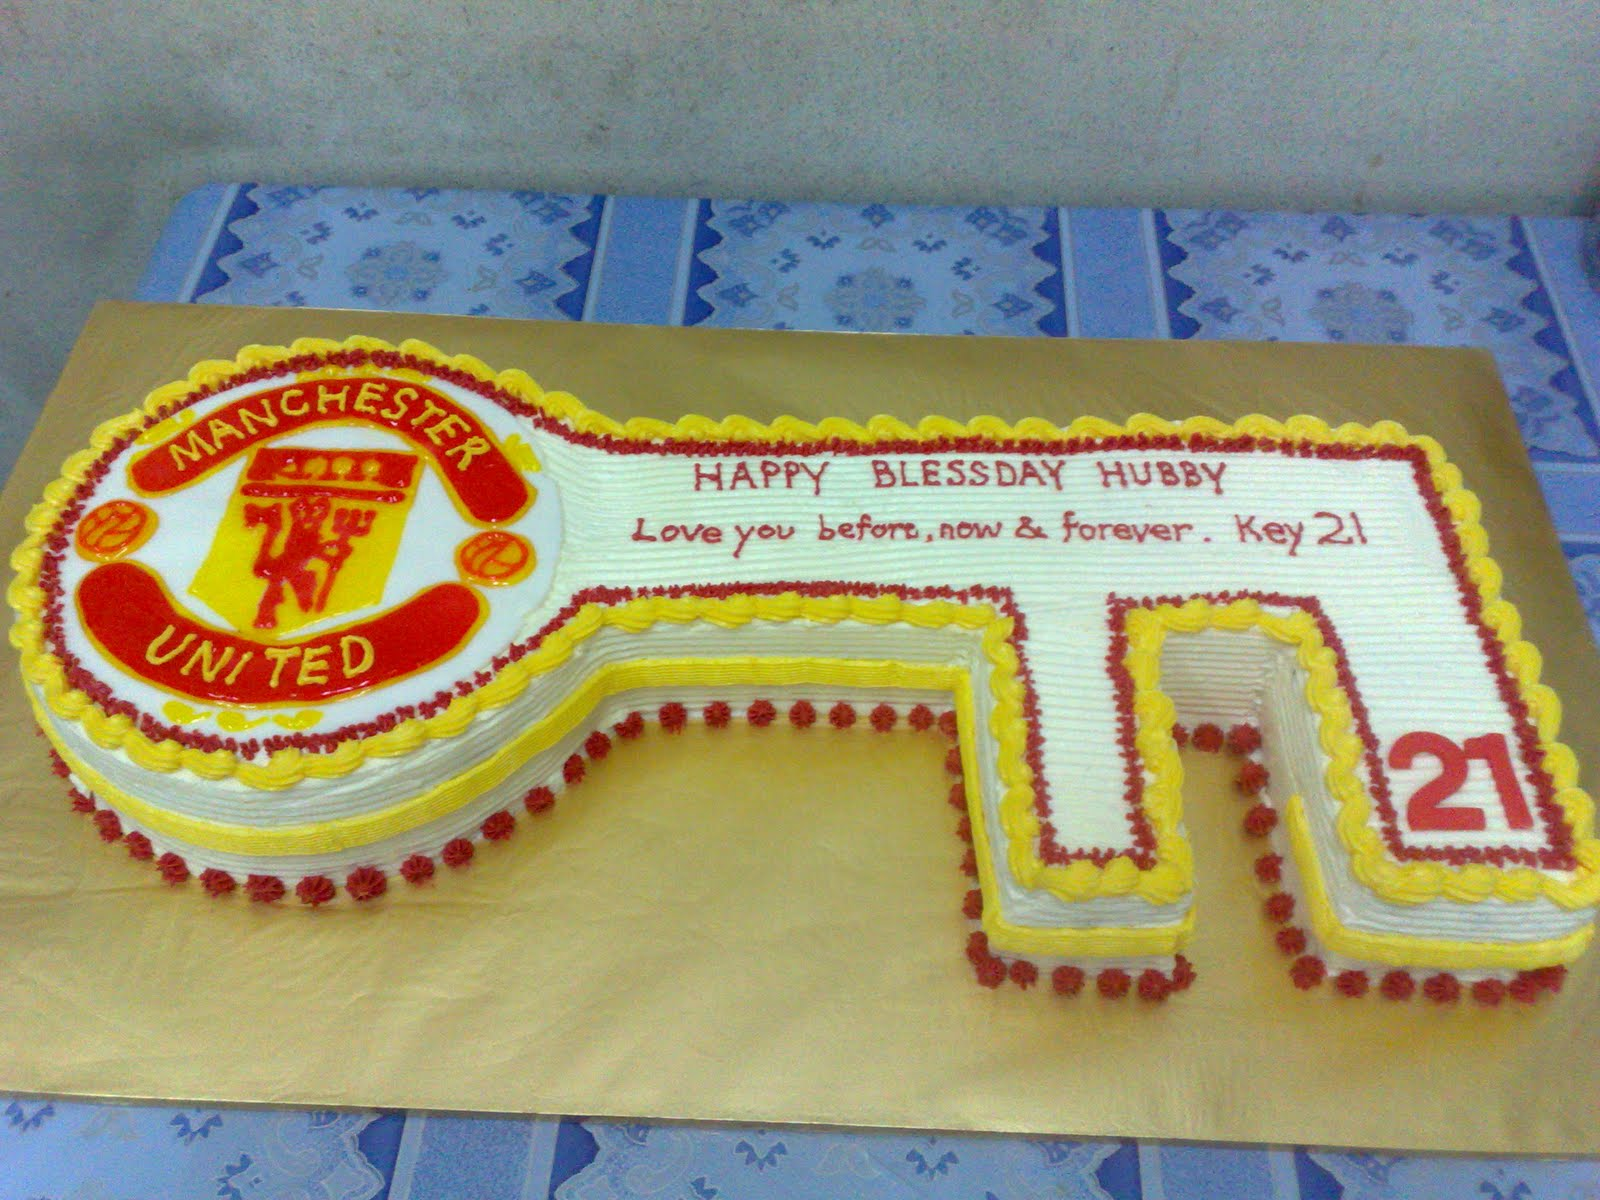 L mis Cakes & Cupcakes Ipoh Contact : 012-5991233 : 21st ...